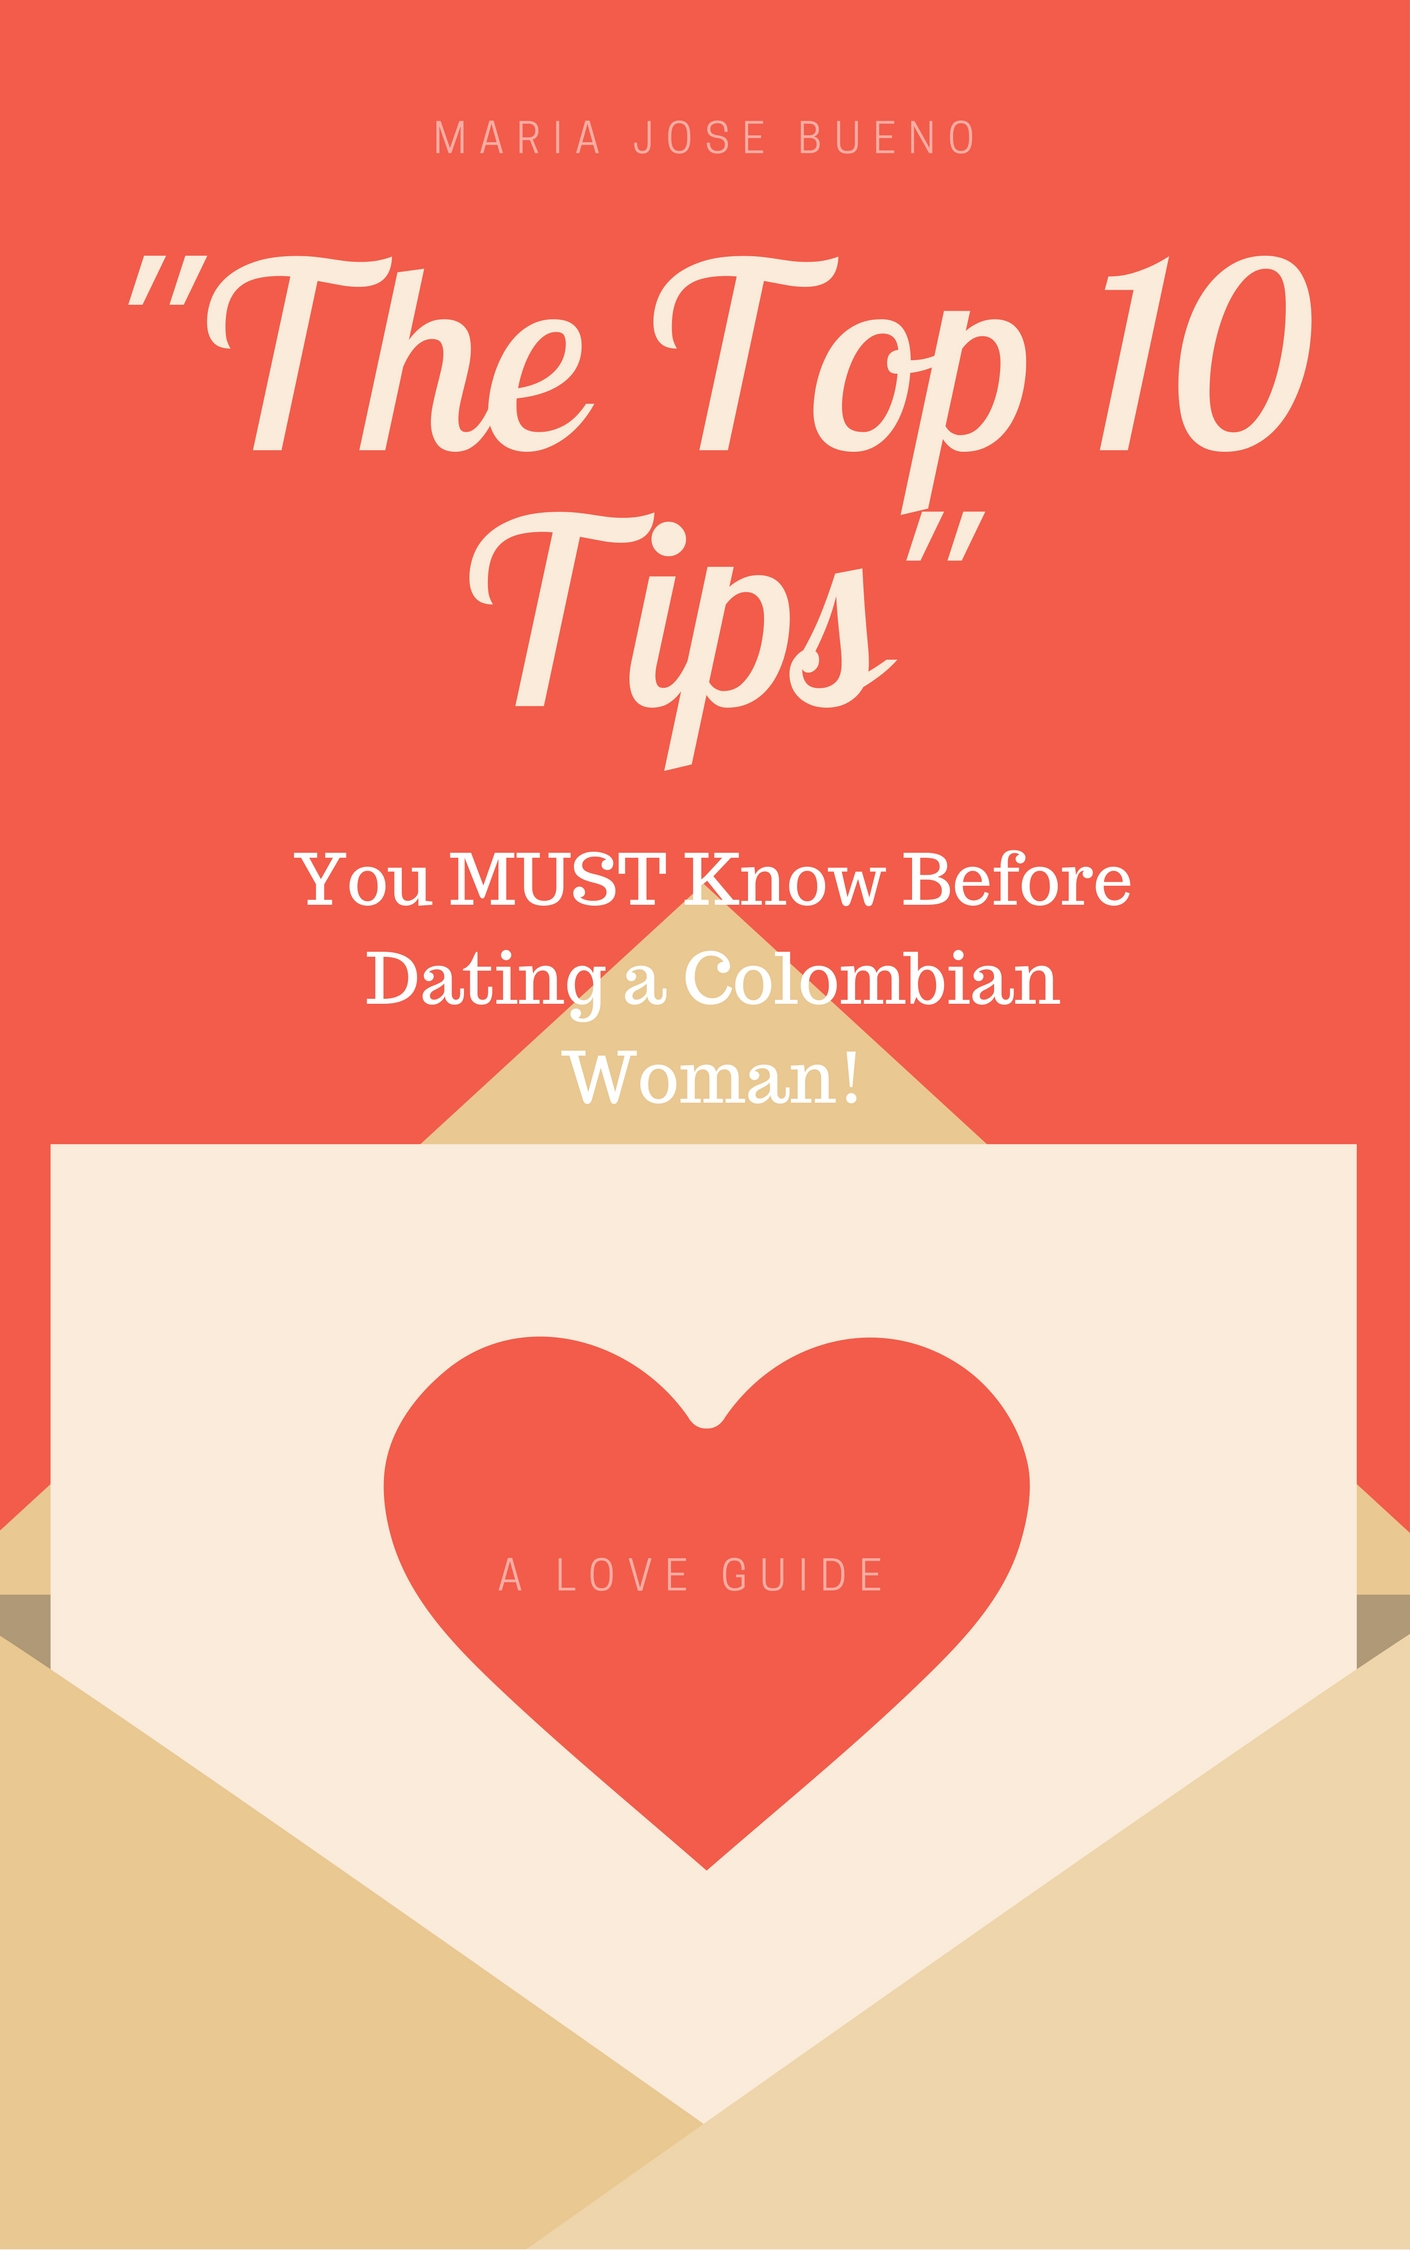 How to get to know a girl before dating